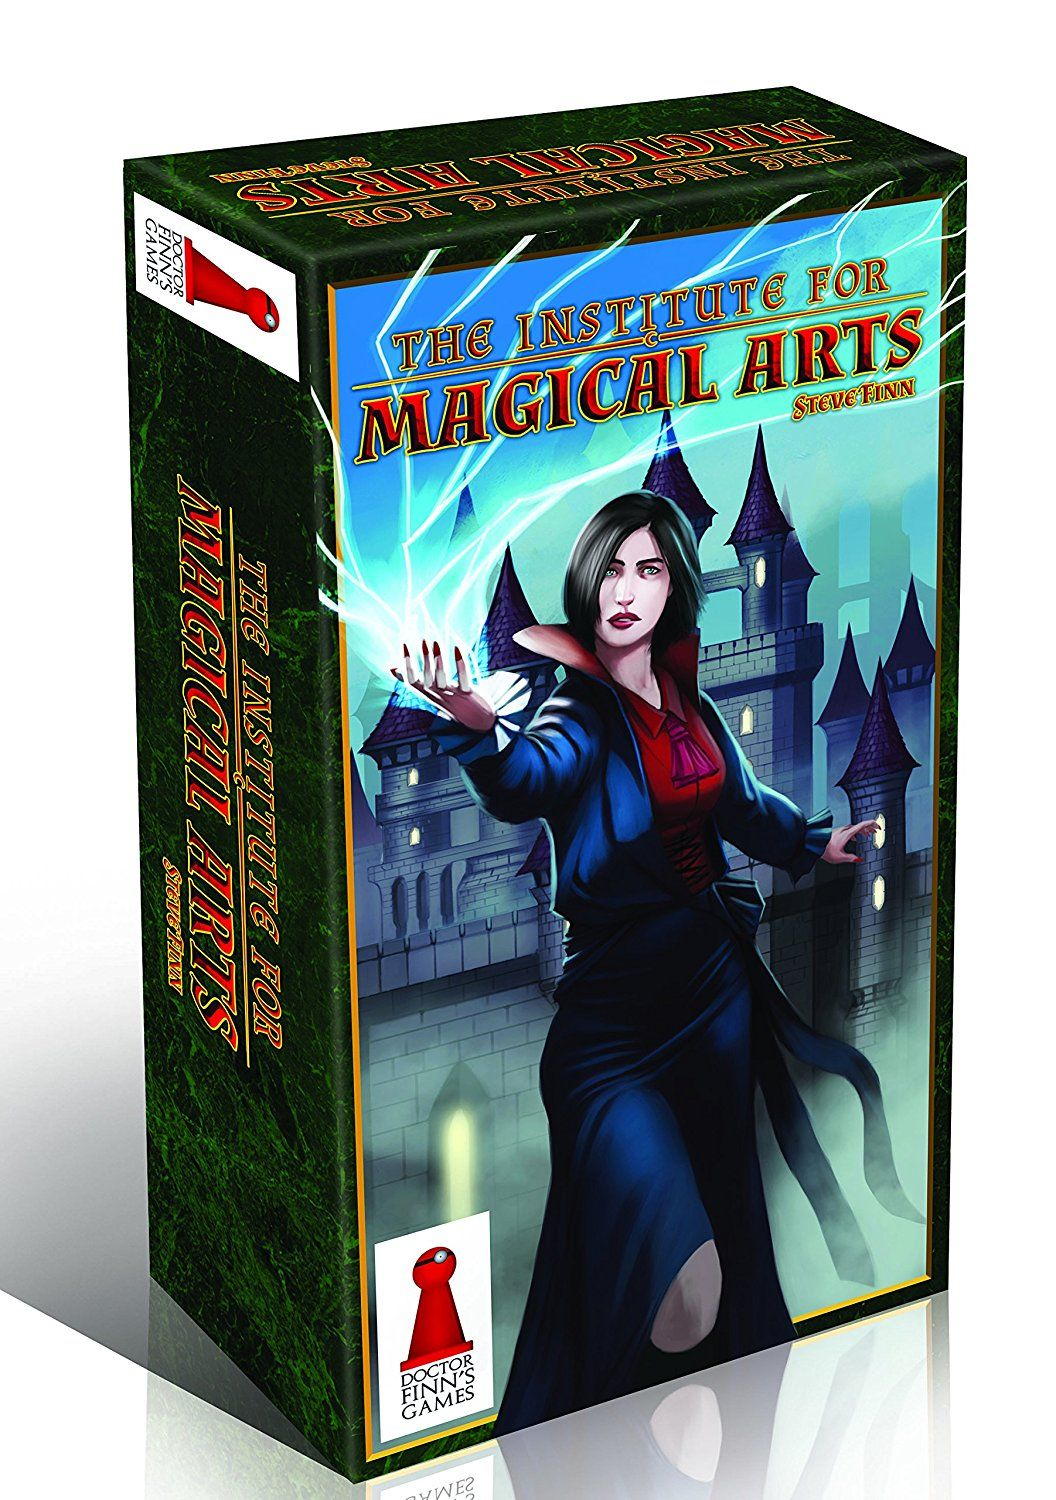 The Institute for Magical Arts Amazon.de Spielzeug (mit